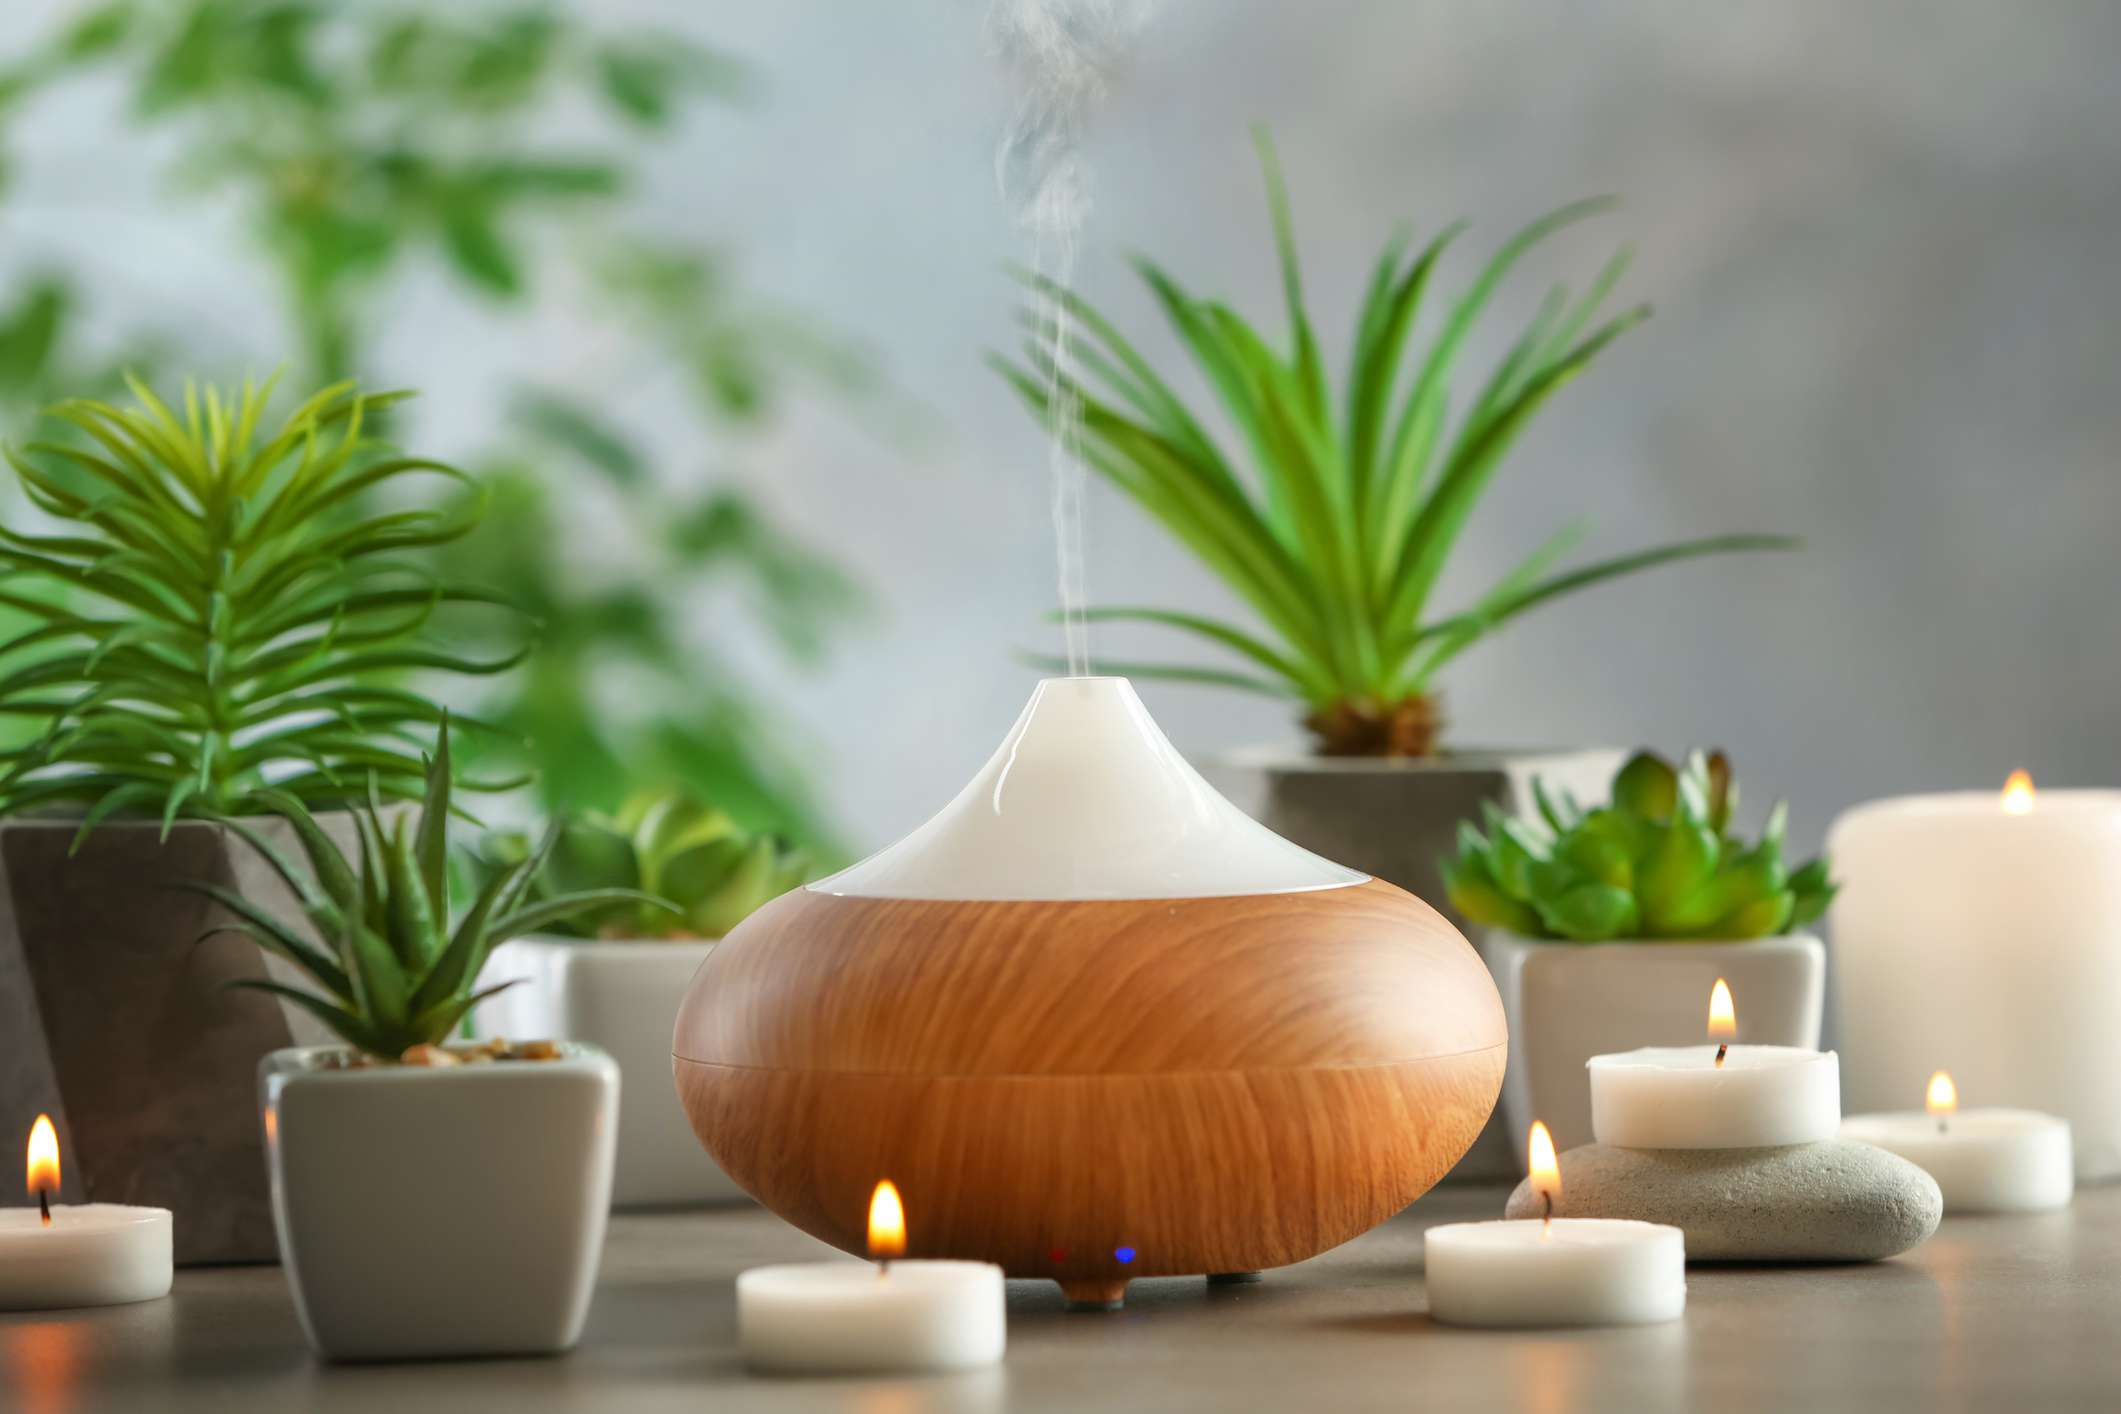 Oil diffuser on table with various succulents